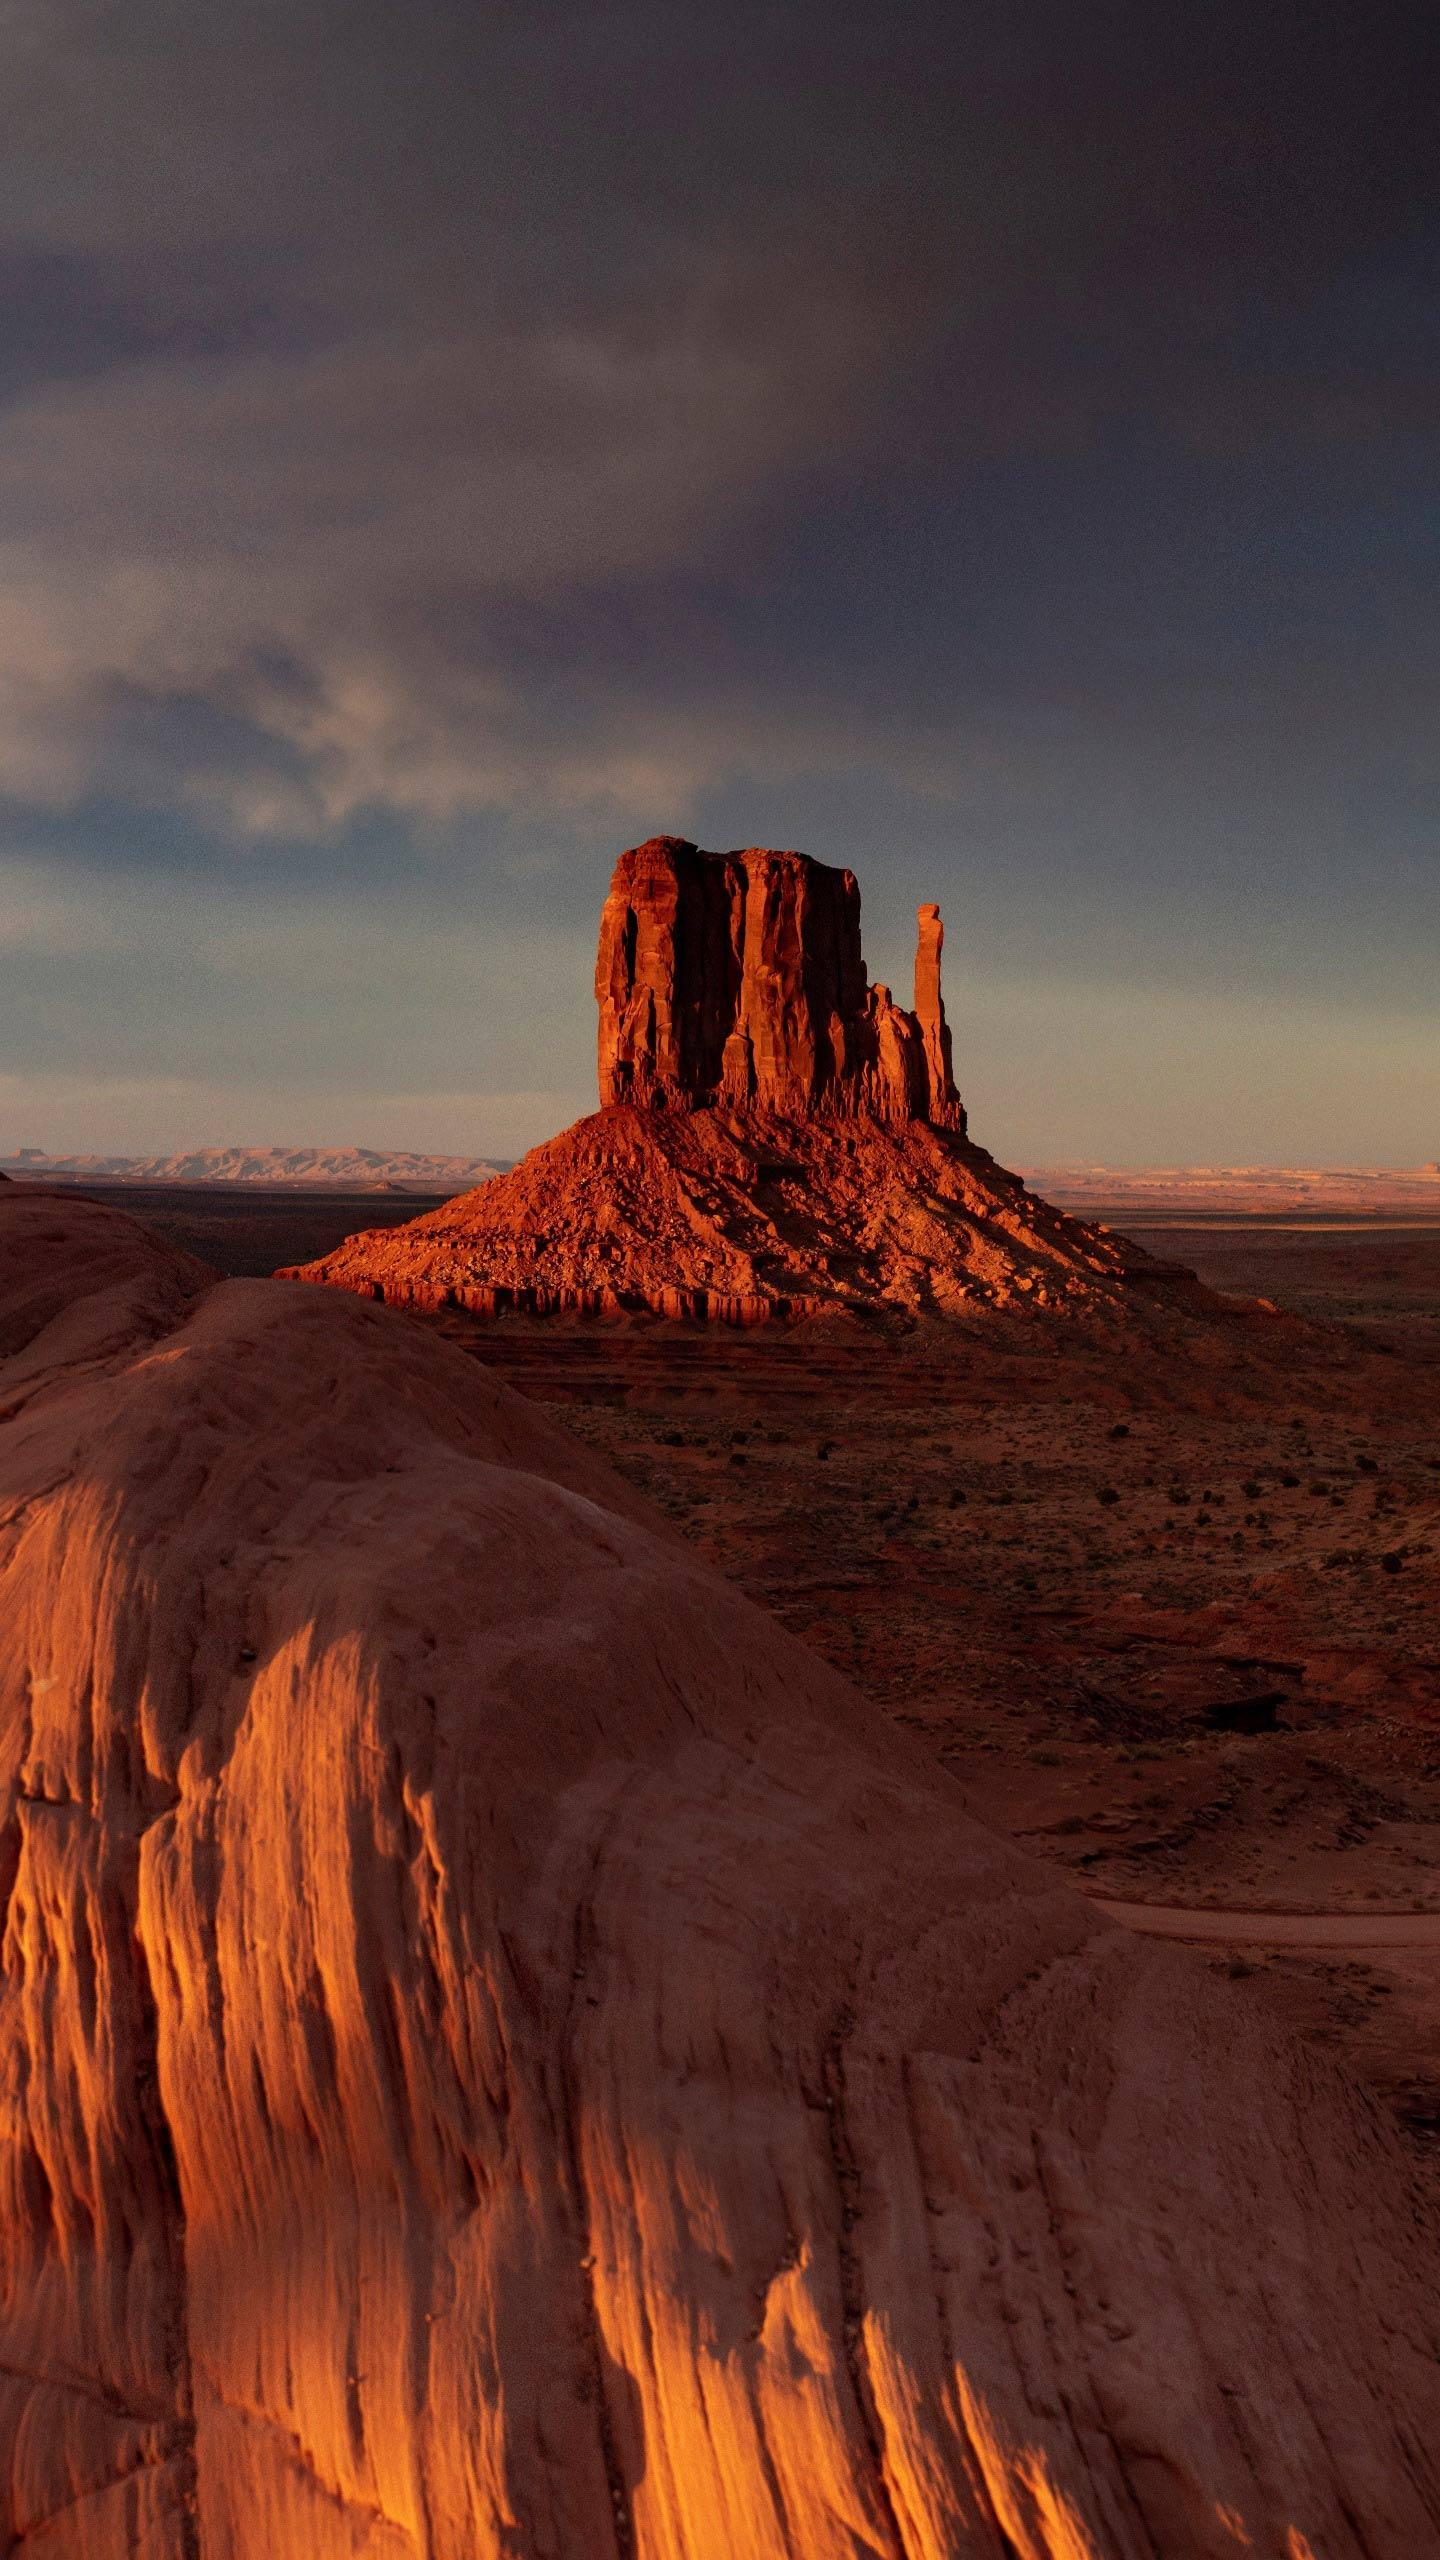 Utah, USA. The Arizona Monument Valley is one of the top ten enchanting deserts in the United States and is part of the Colorado Plateau.